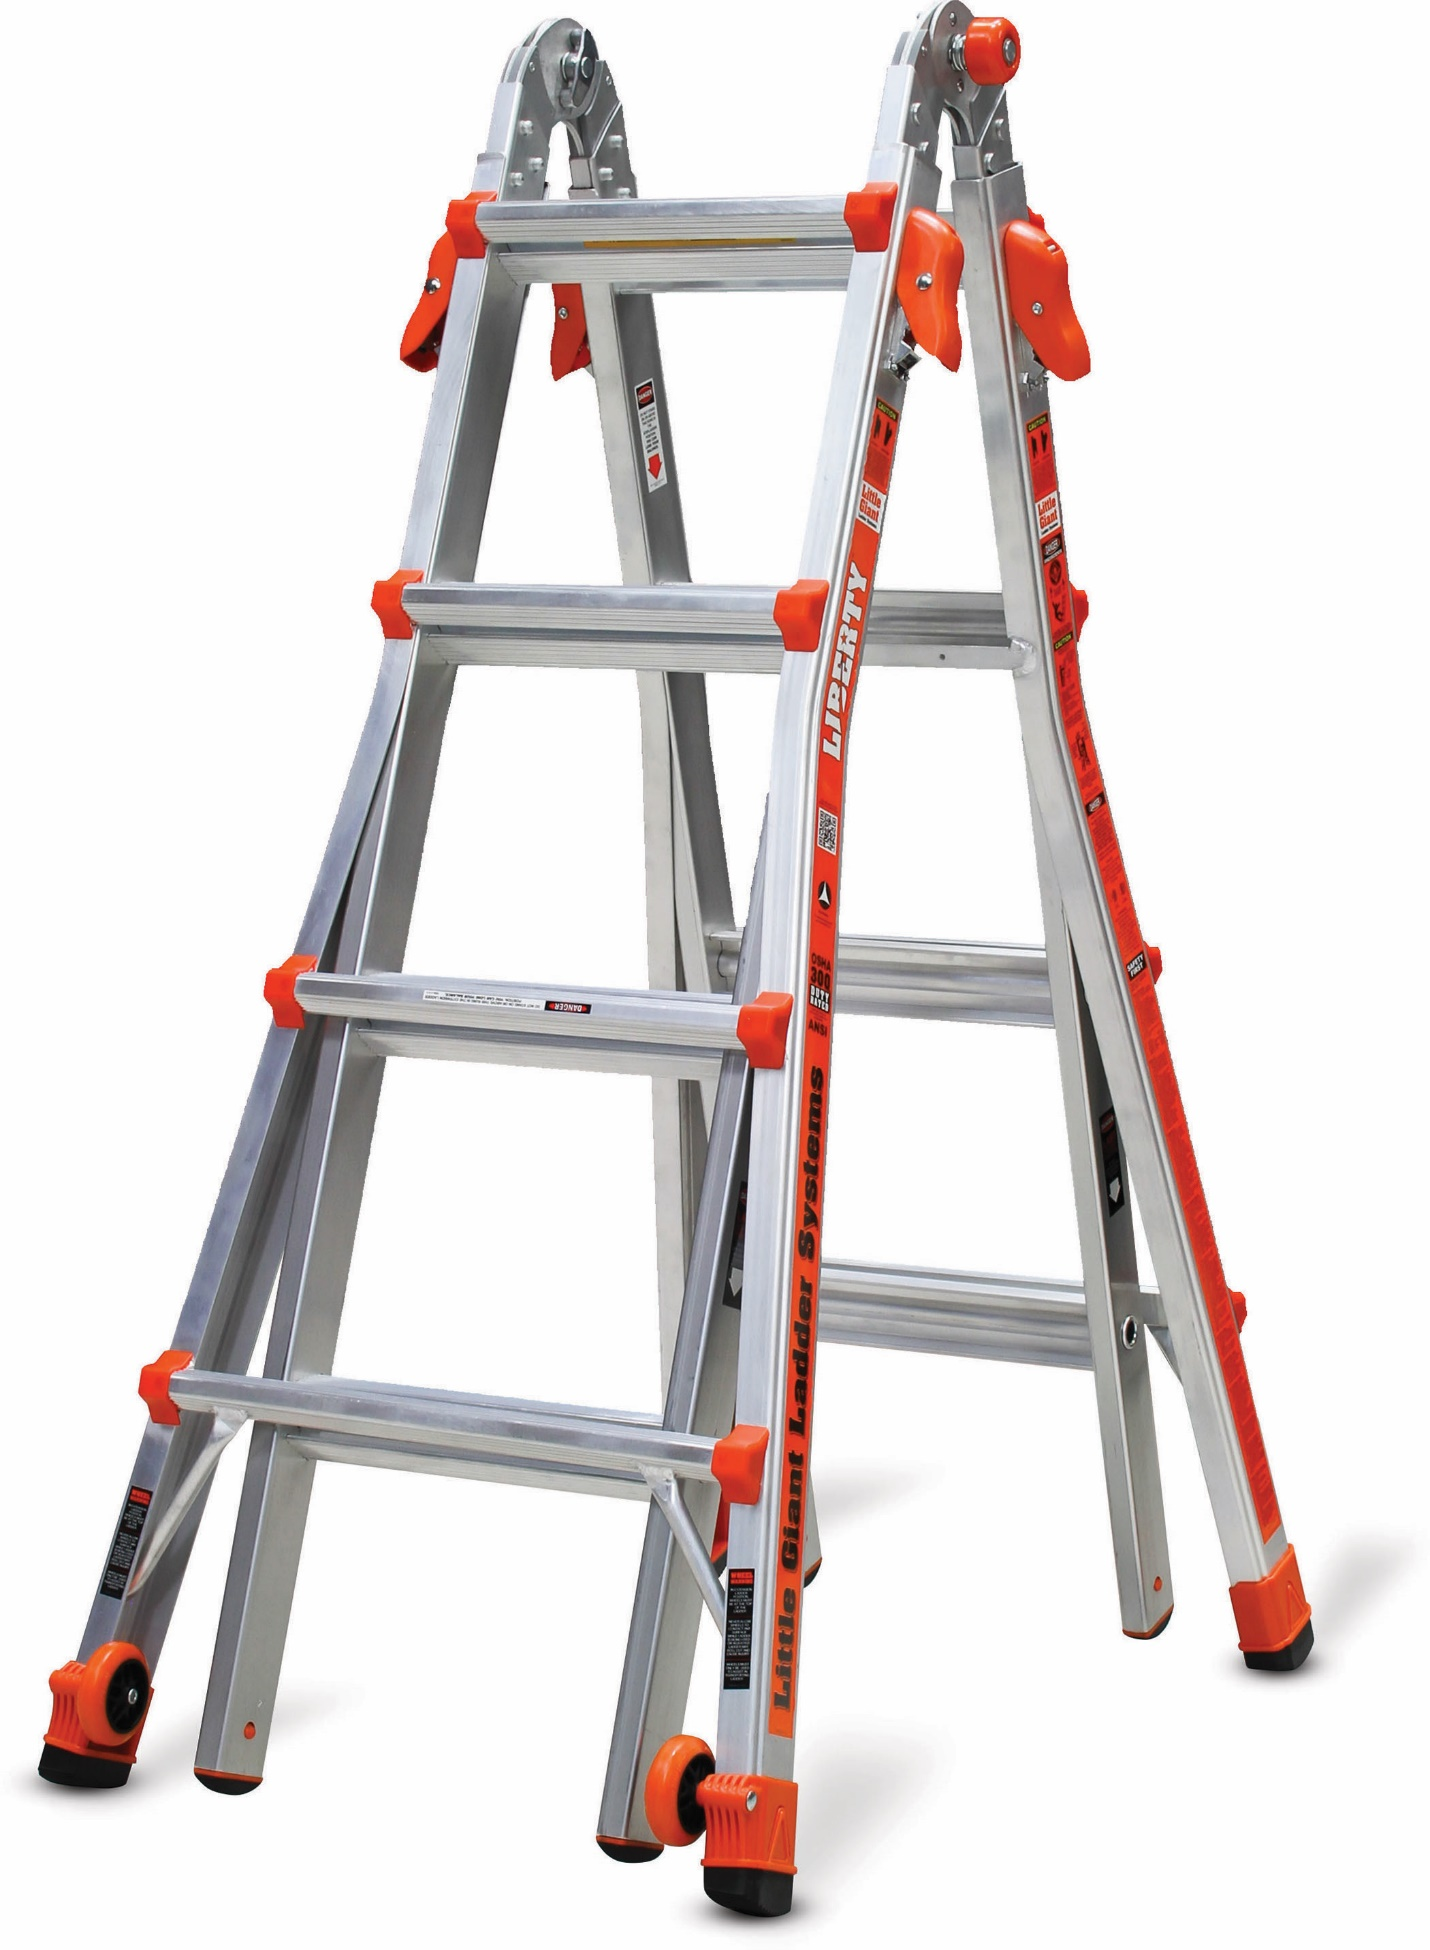 Wing Enterprises Recalls Little Giant Ladders Due To Fall